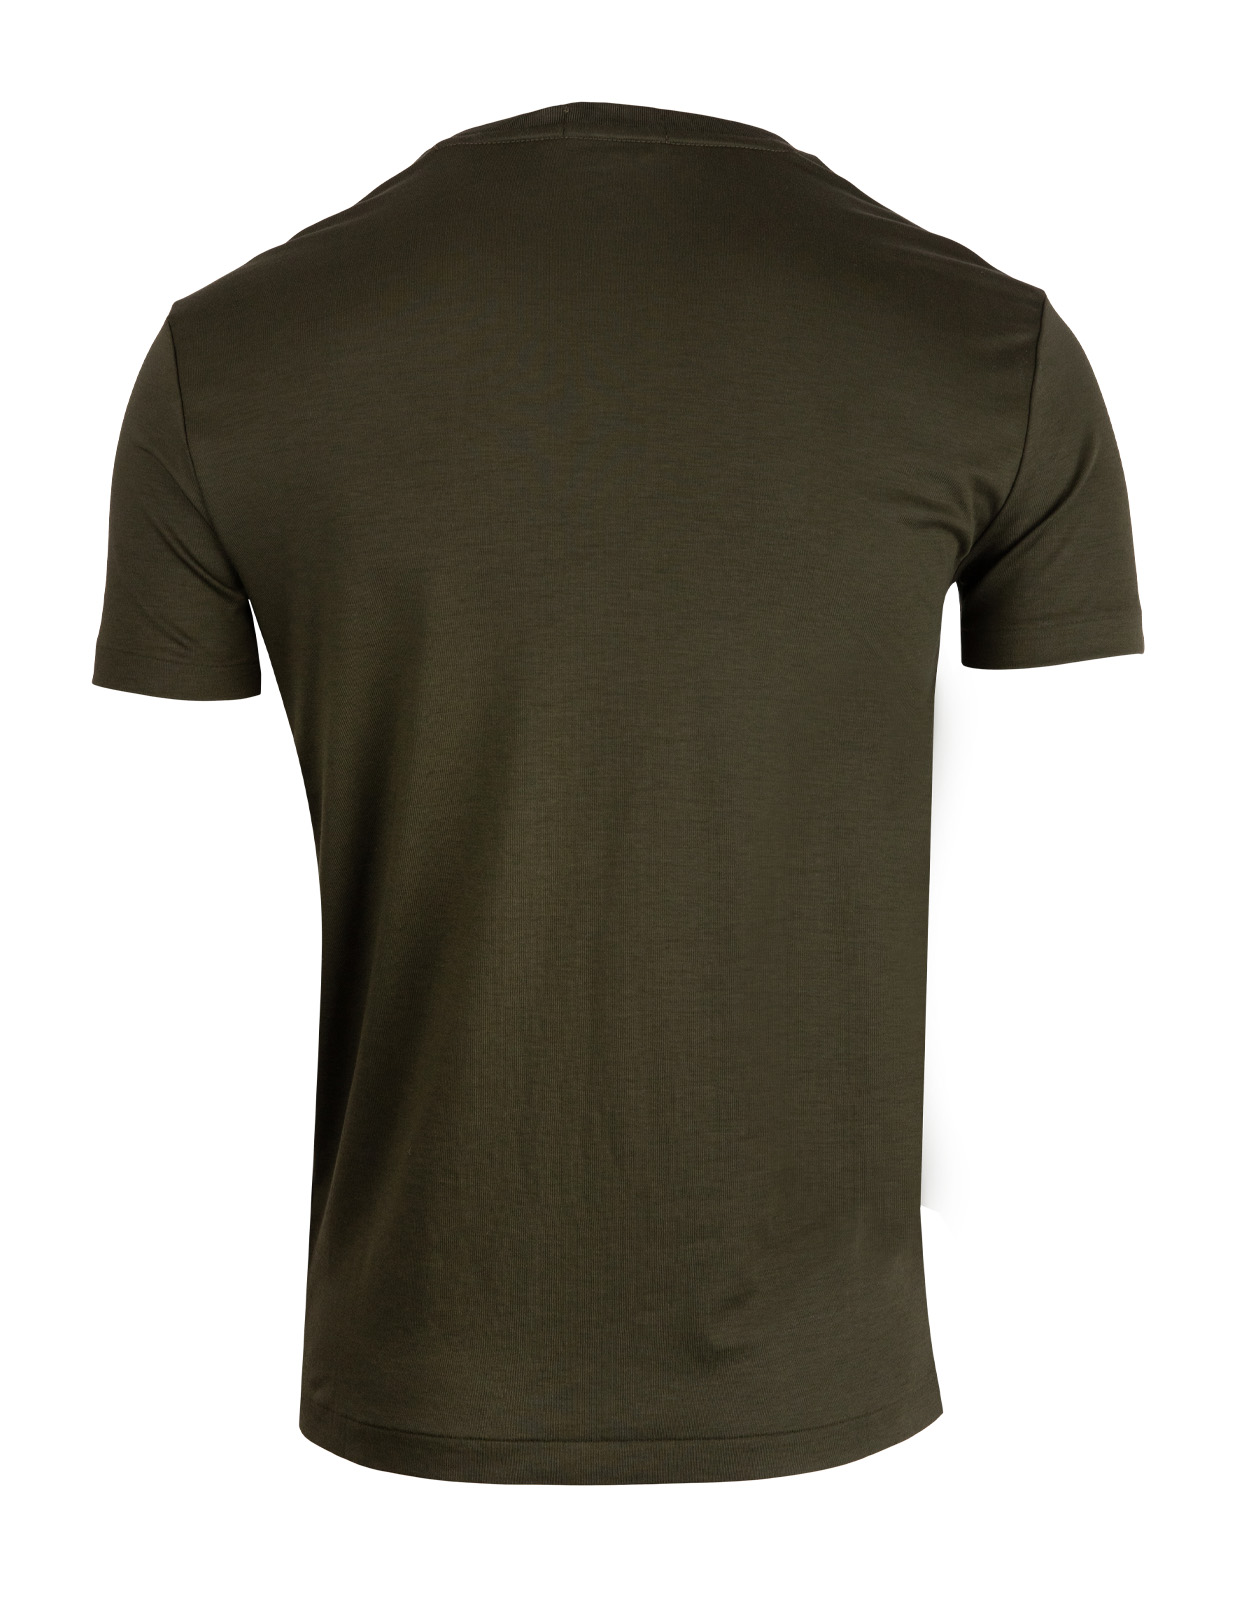 Luxury Pima Cotton Crew Neck Tee EstateOlive